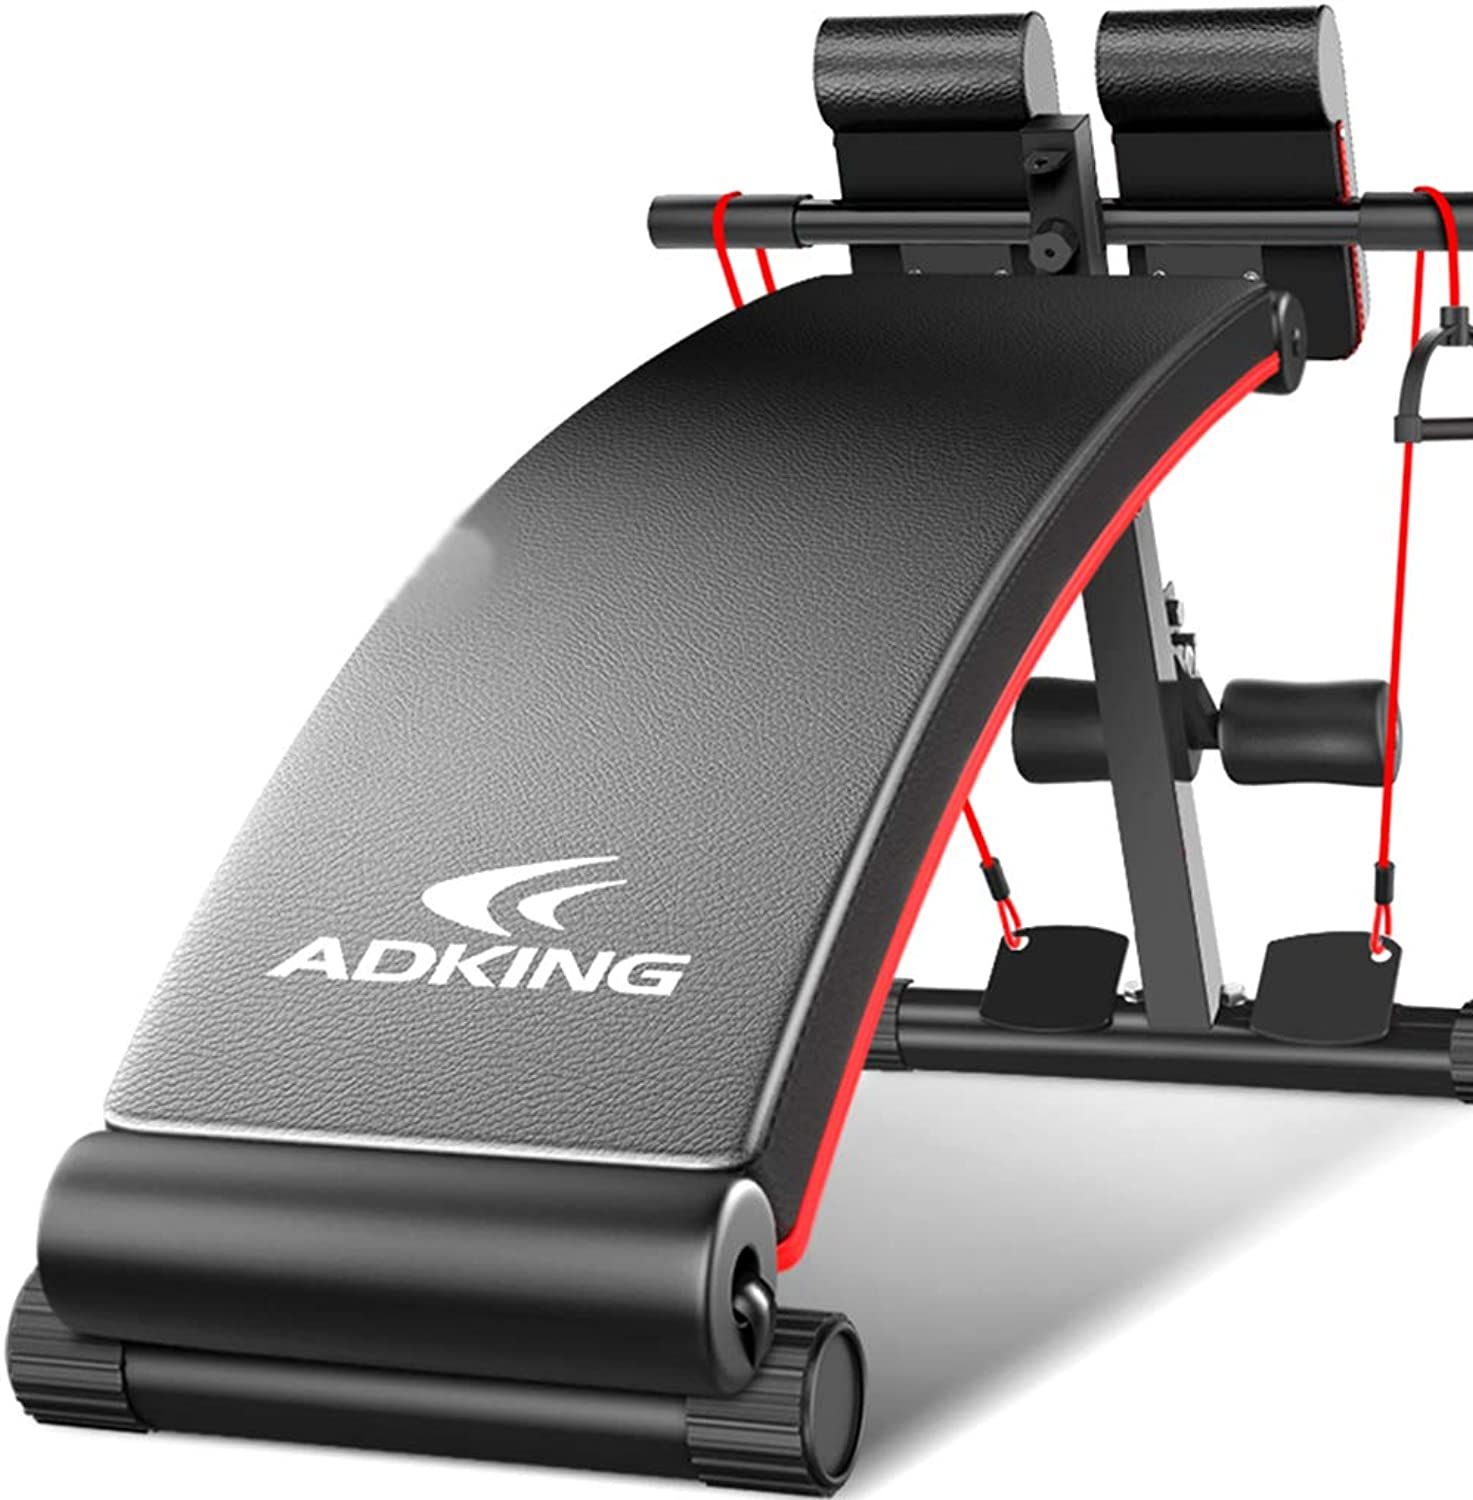 Sit-ups, Fitness Equipment, Abdomen, Home, Supine, Exercise, Abdominal Muscles, Dumbbell Bench